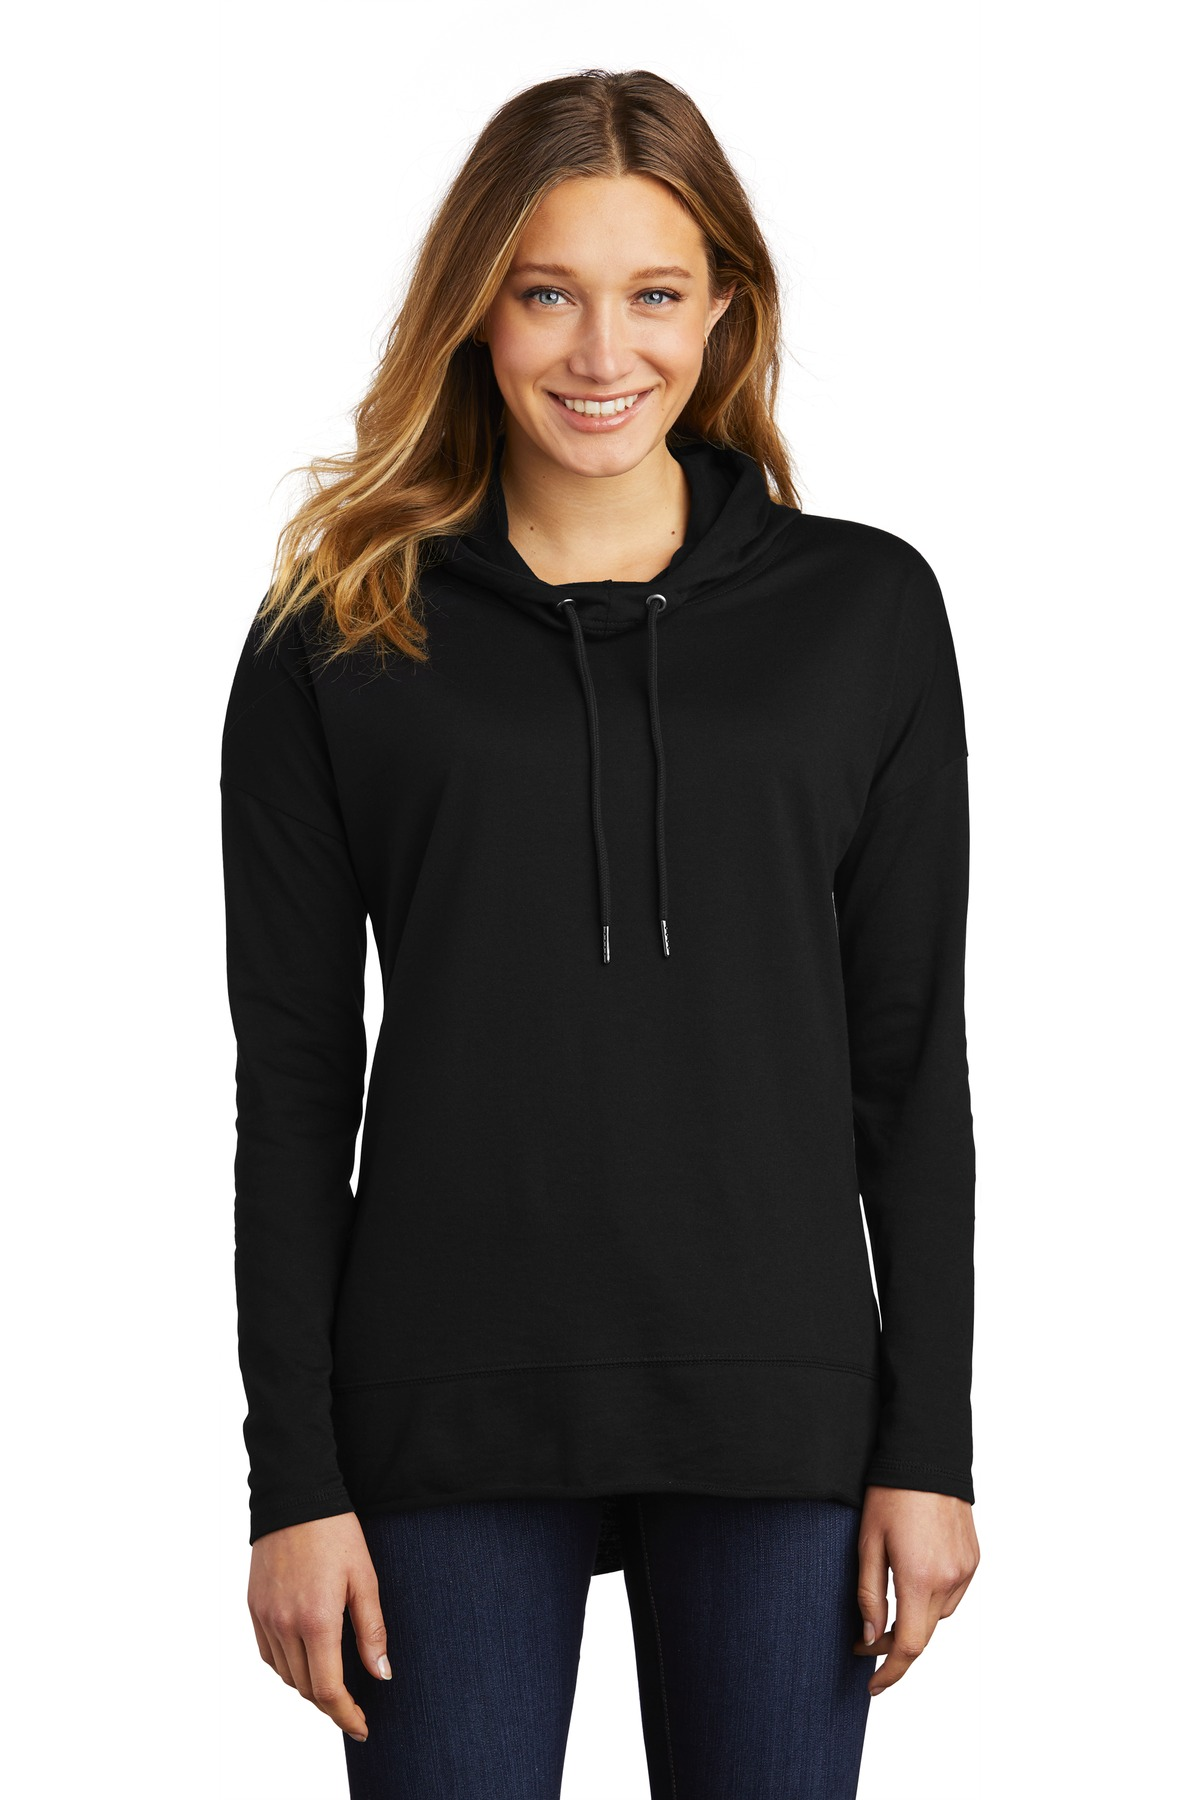 District  ®  Women's Featherweight French Terry  ™  Hoodie DT671 - Black